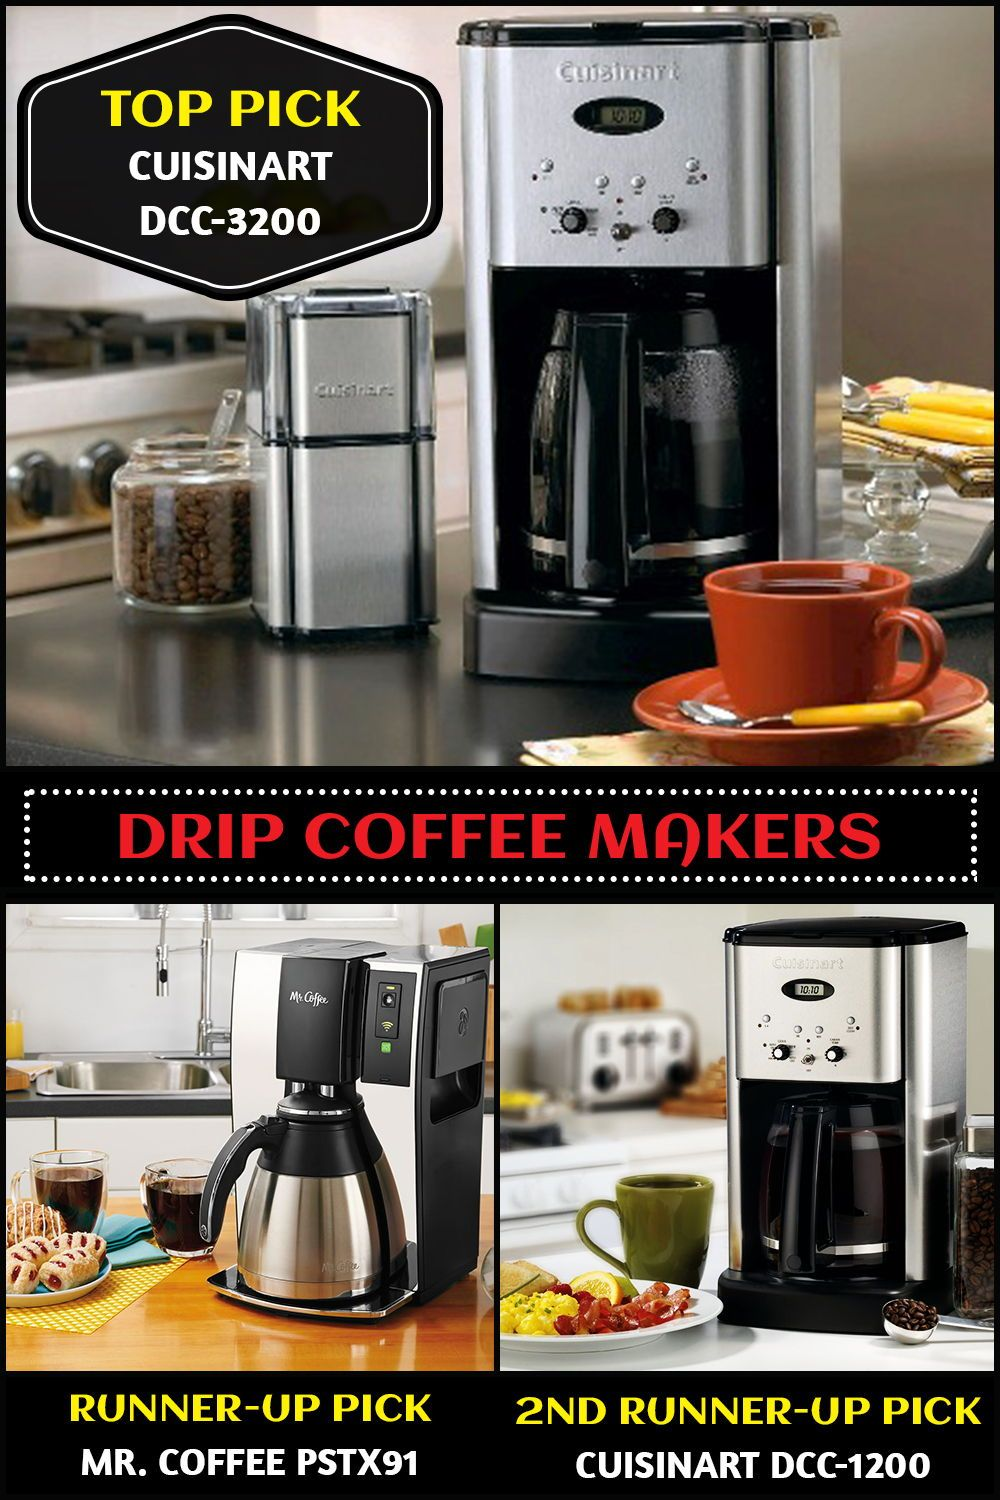 Top 10 Drip Coffee Makers (Feb. 2020) - Reviews & Buyers ...